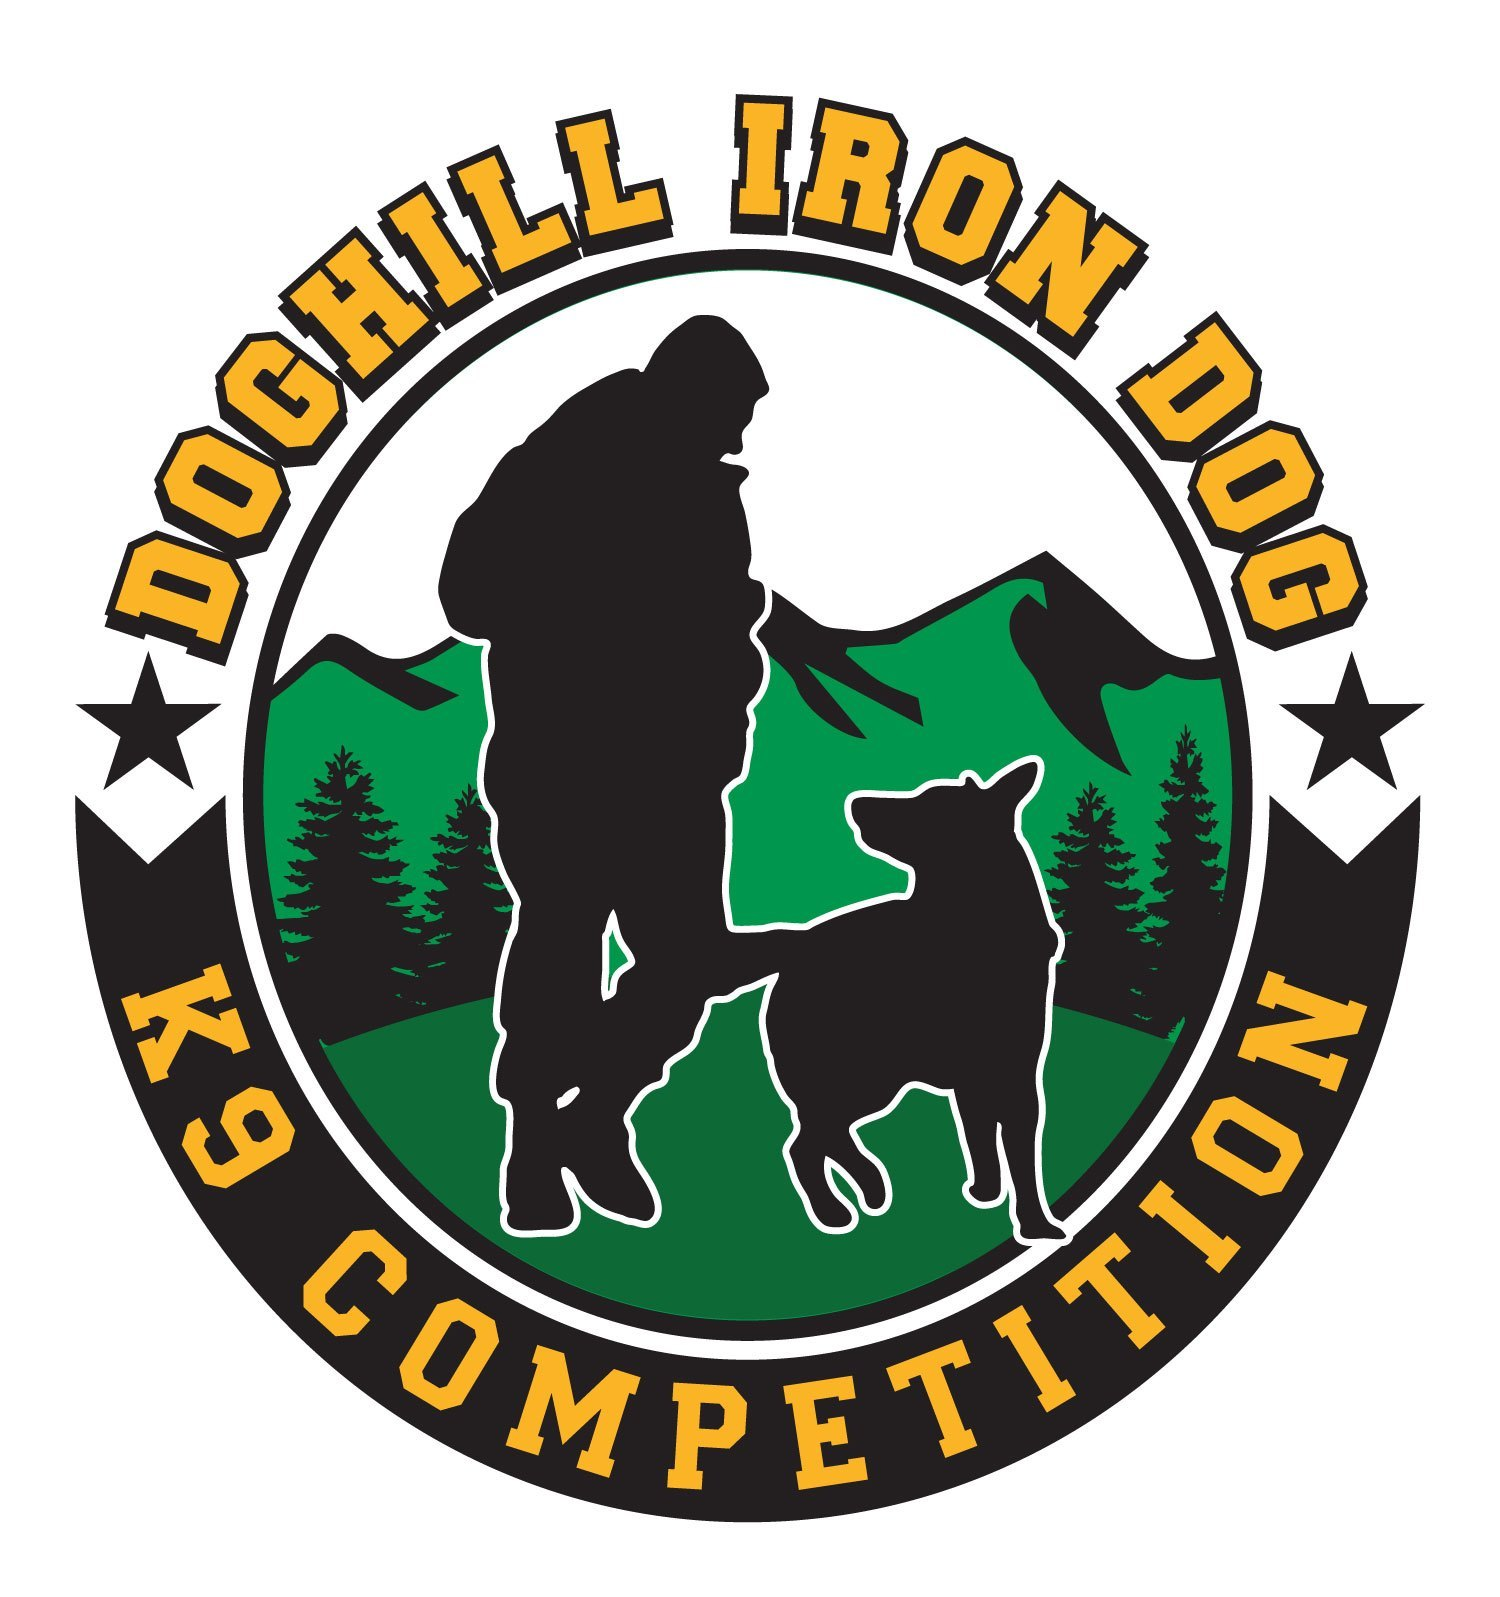 DogHill K9 Iron Dog